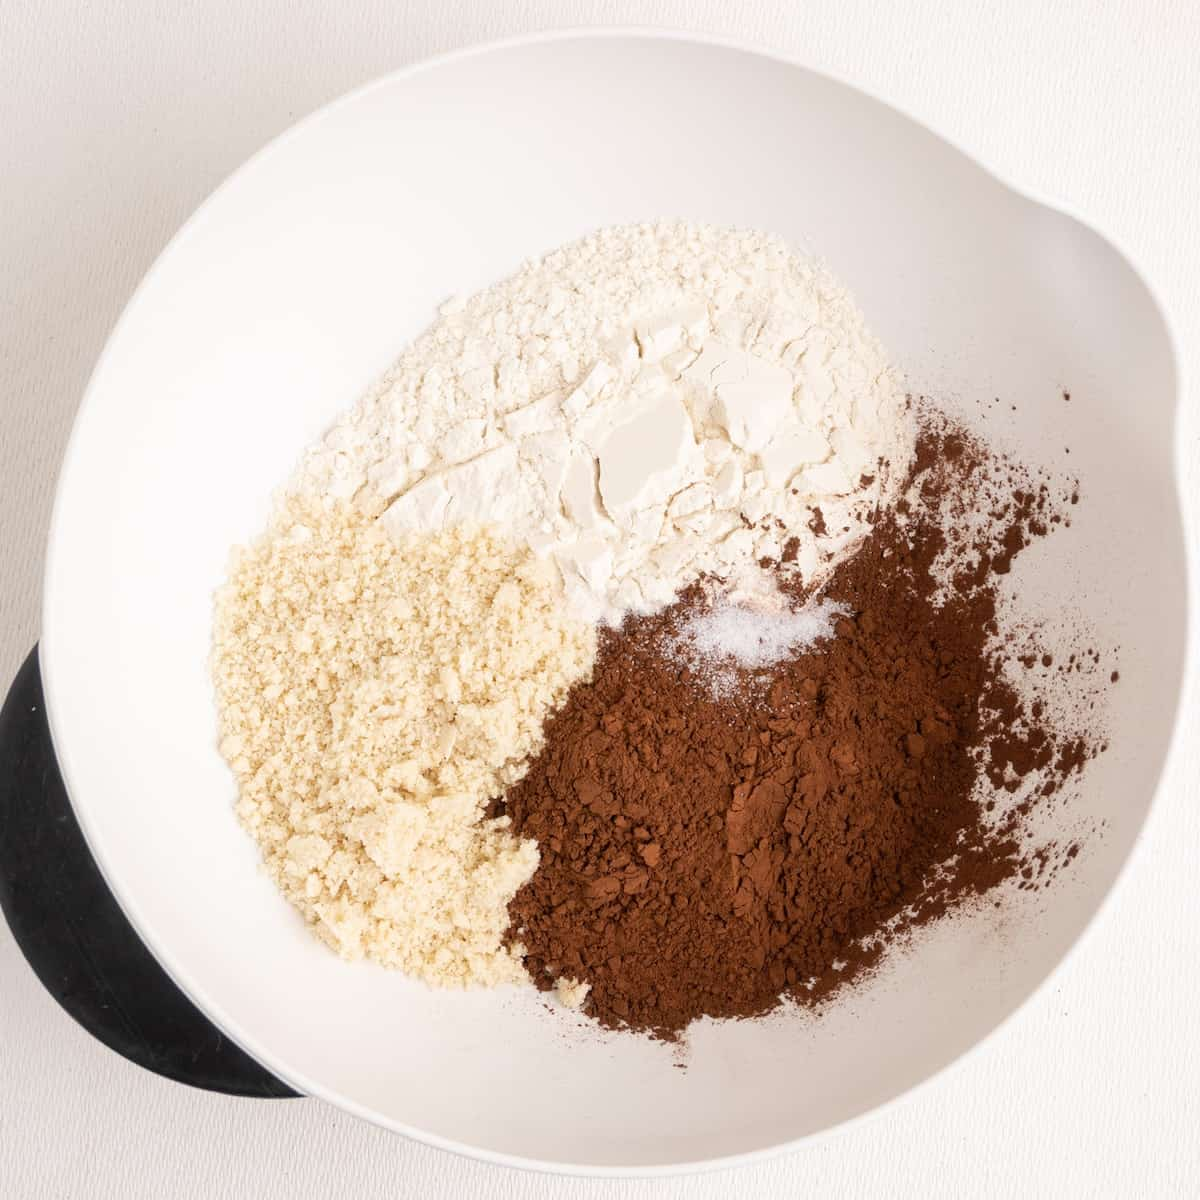 Flour, slat, ground almonds and cocoa powder in a mixing bowl.